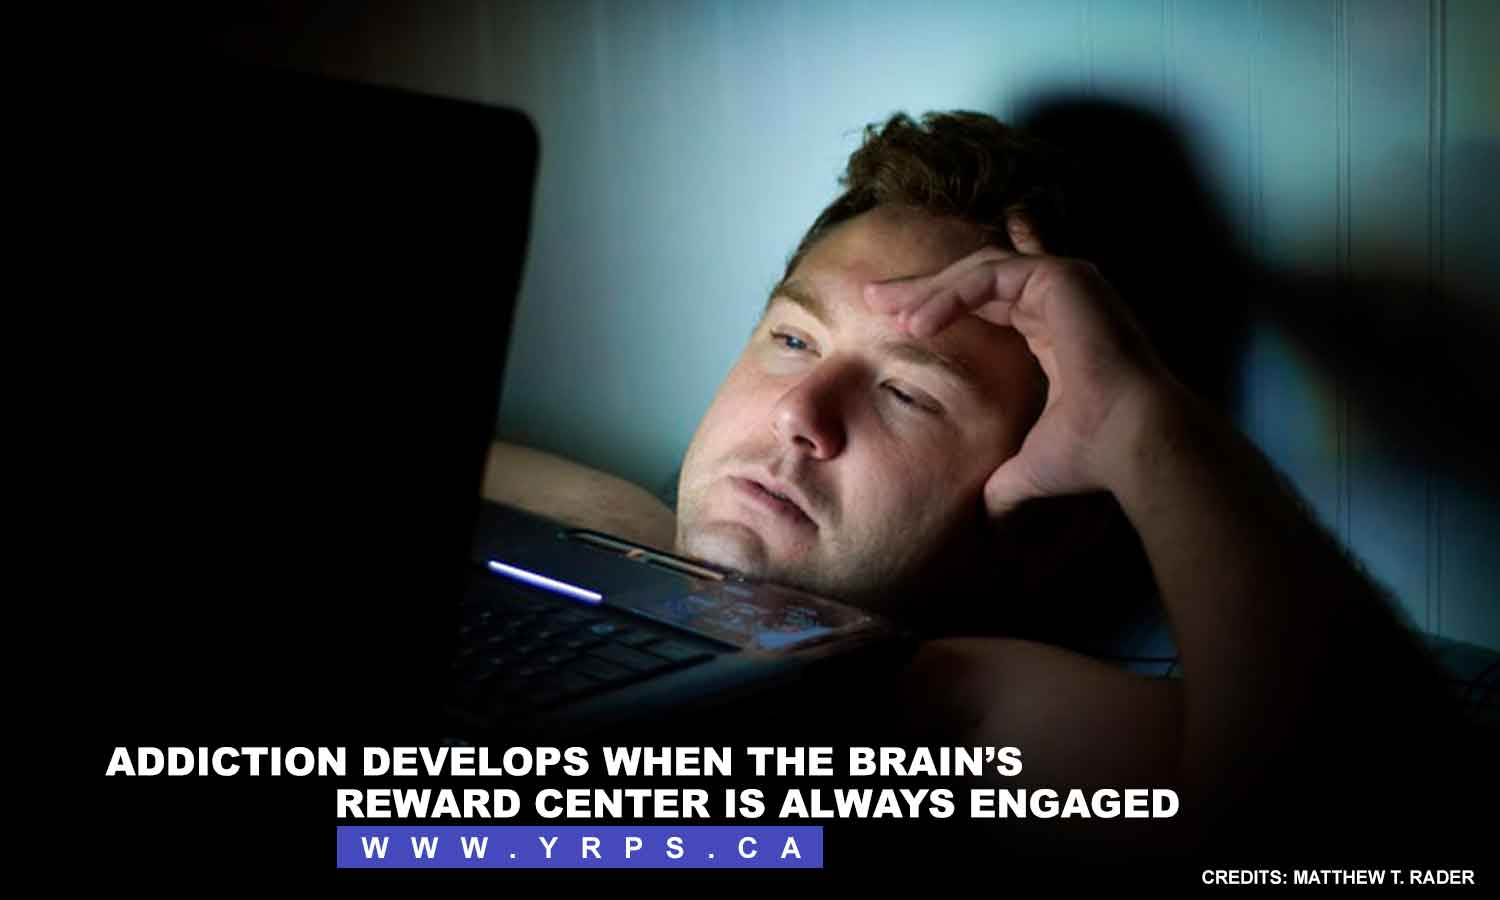 Addiction develops when the brain's reward center is always engaged